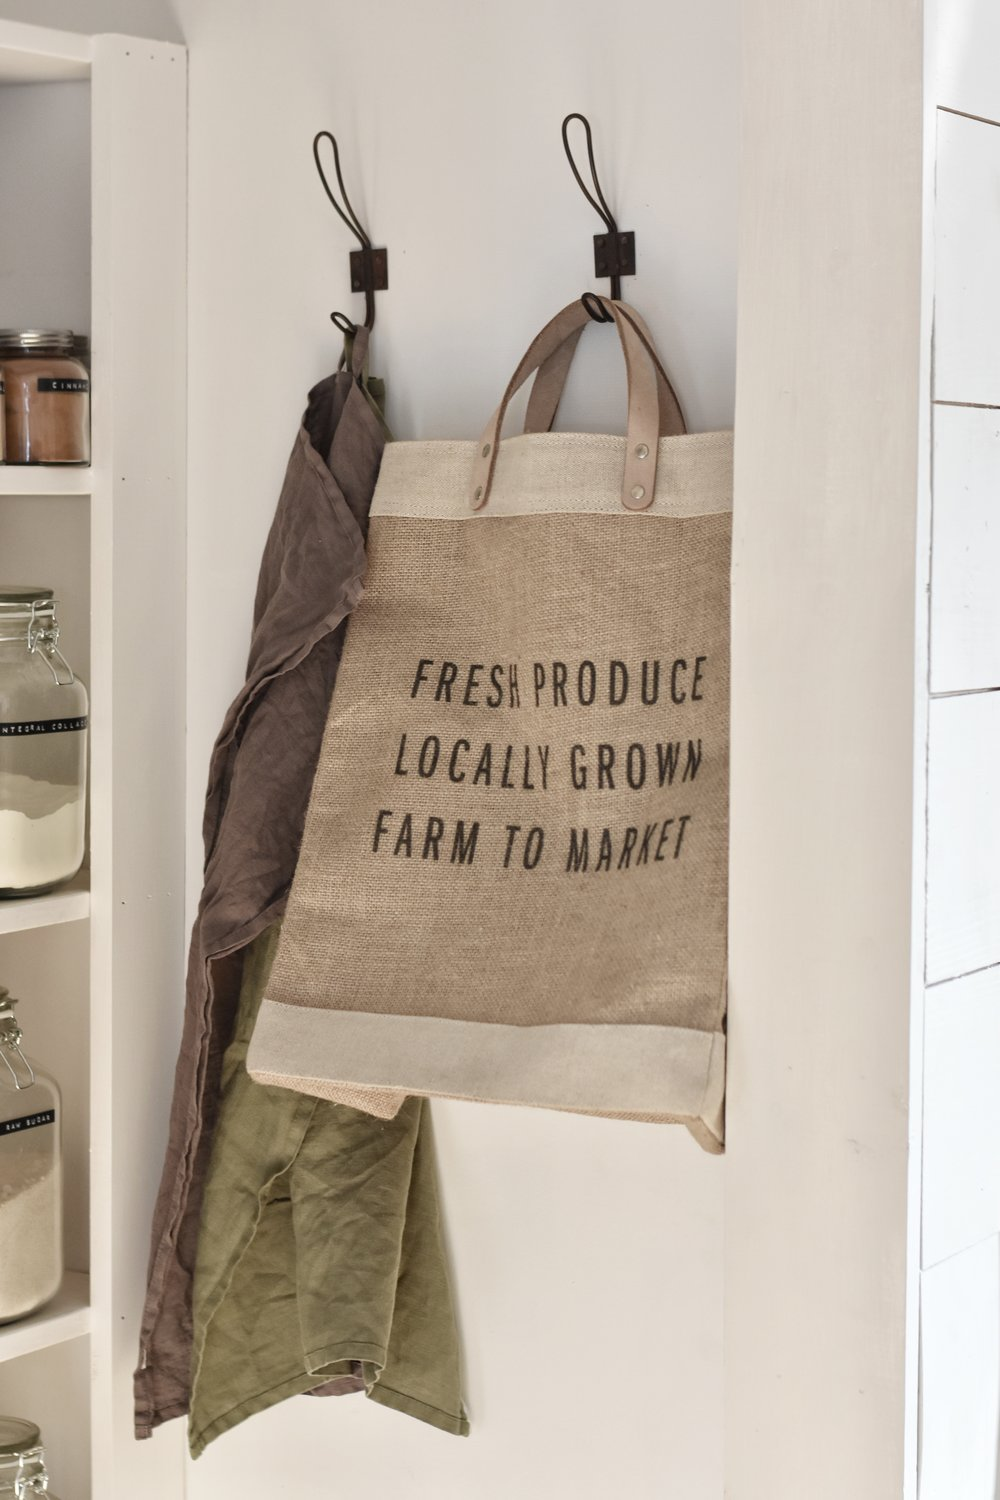 Pantry essentials in a sustainable way | Rocky Hedge Farm